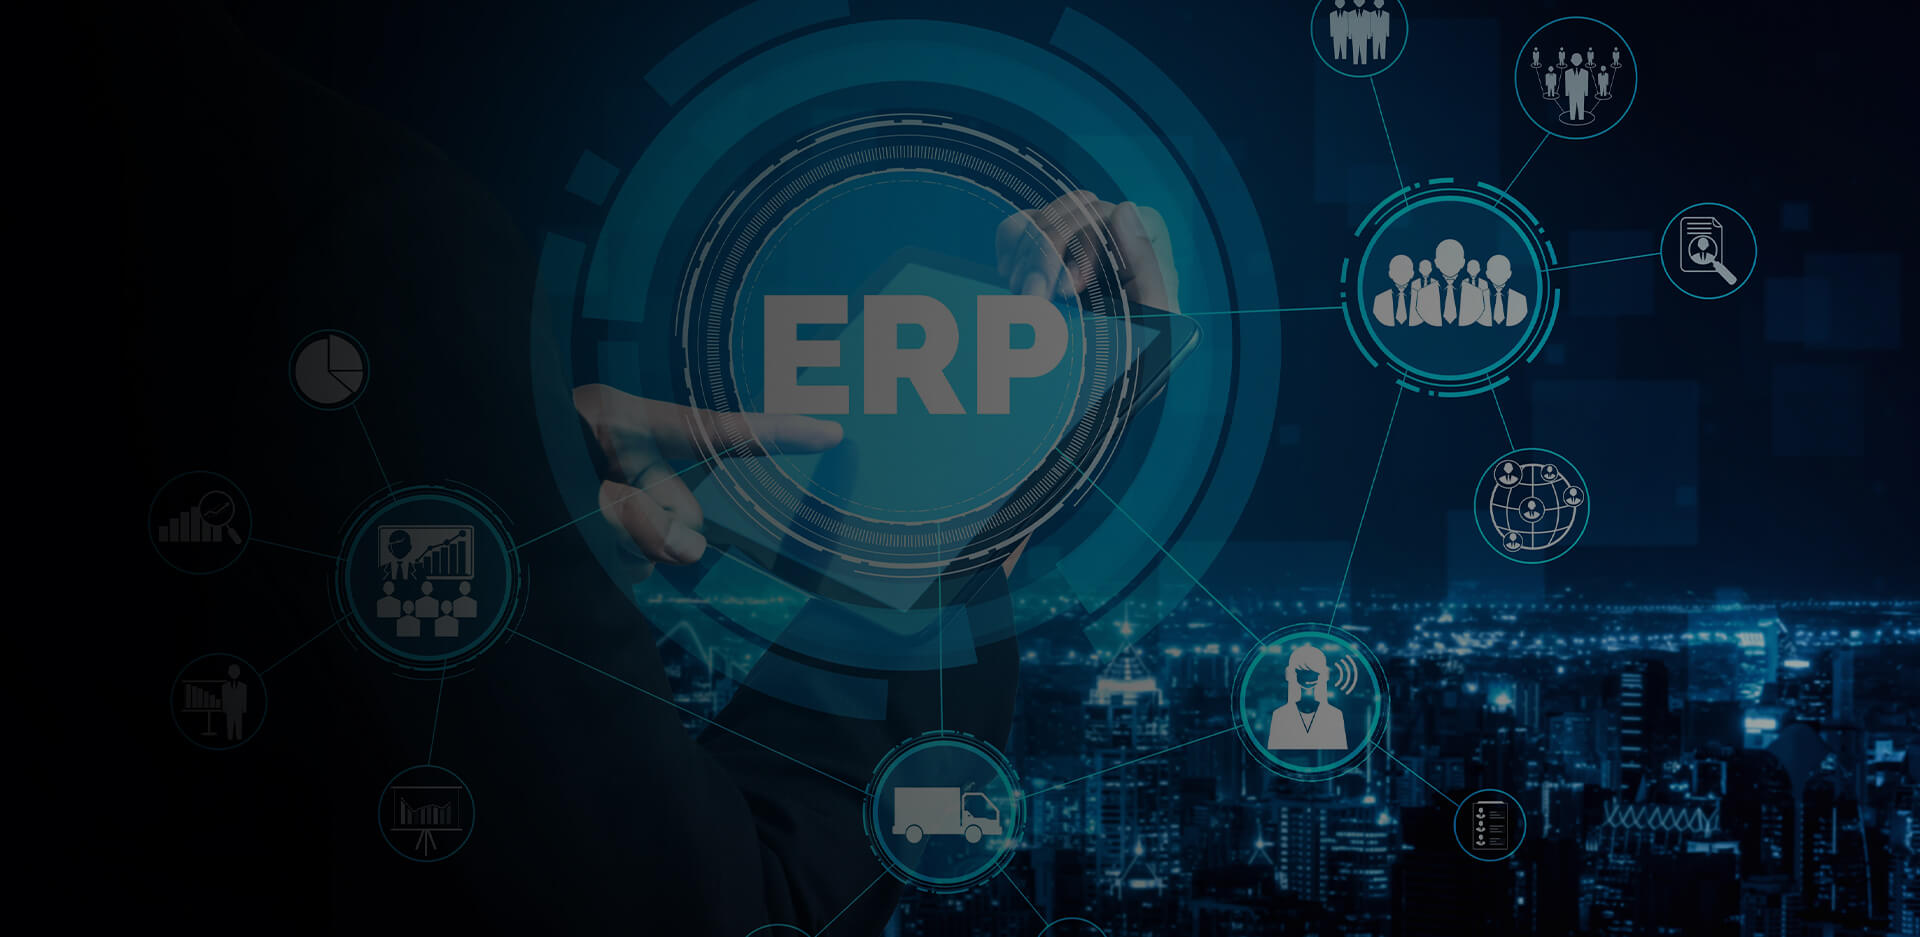 Full stack ERP solution delivers performance and profits